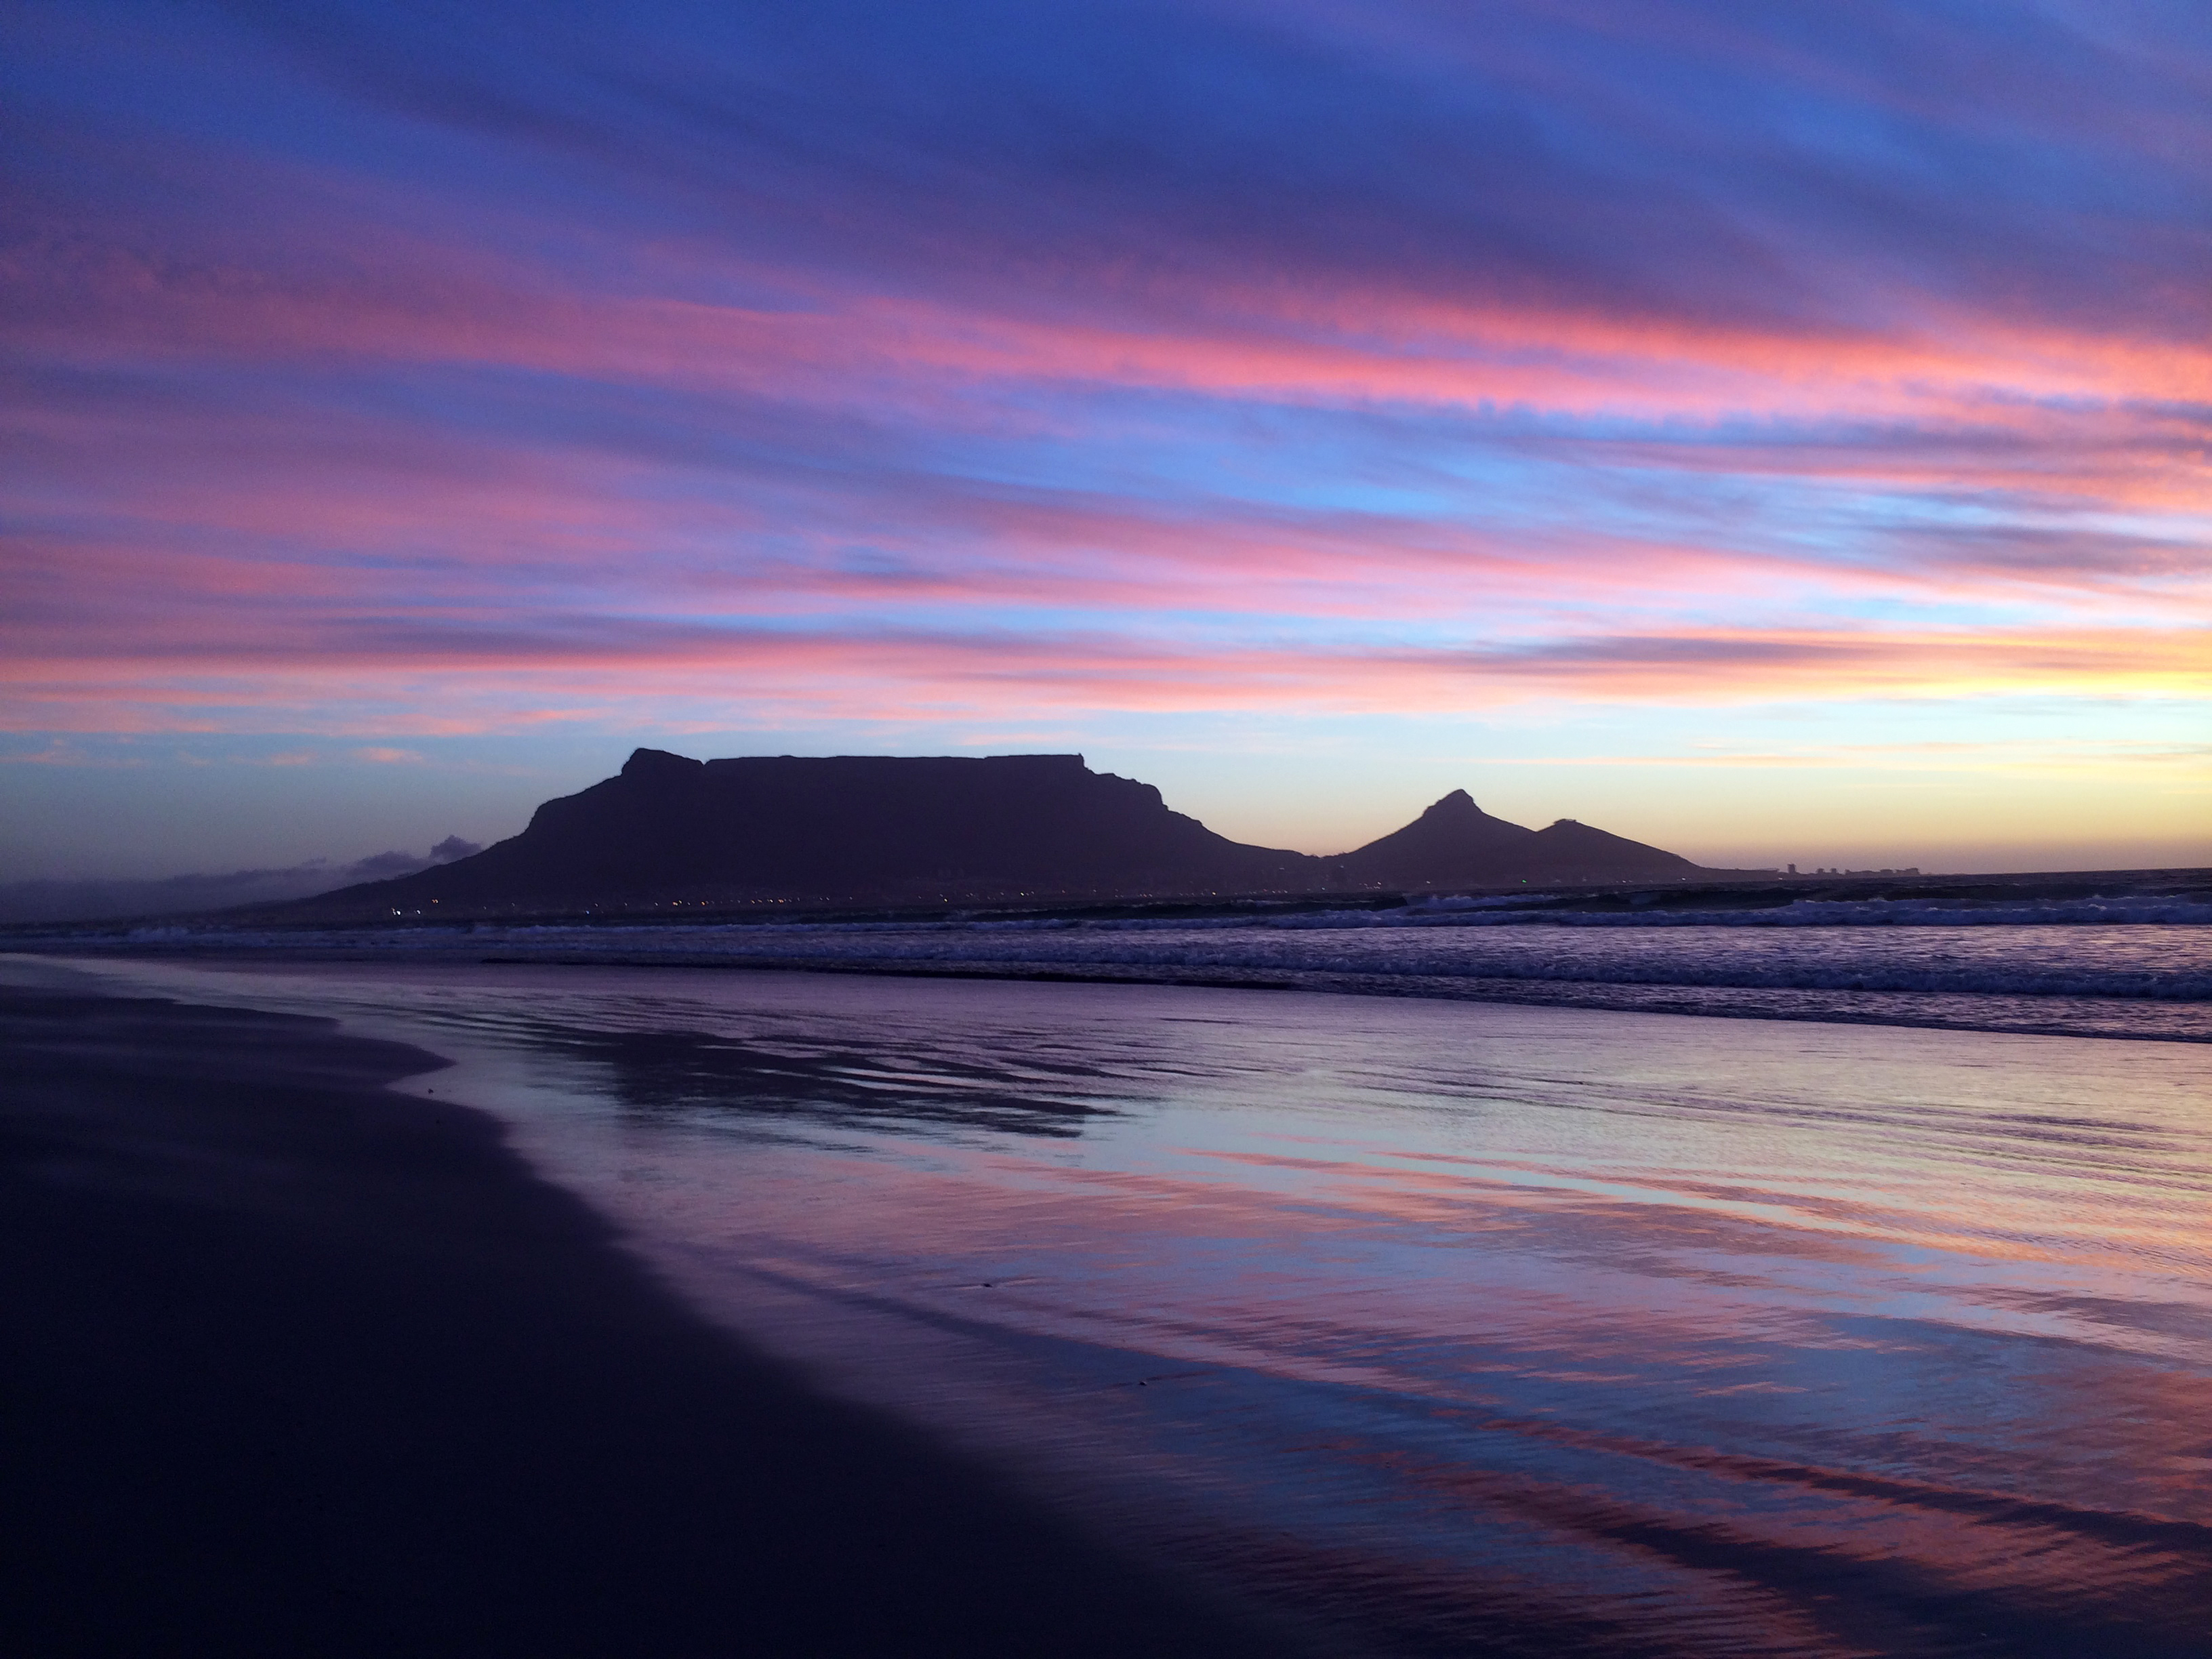 Table Mountain from Sunset Beach   Photo by Wilson Carletti (All Rights Reserved)